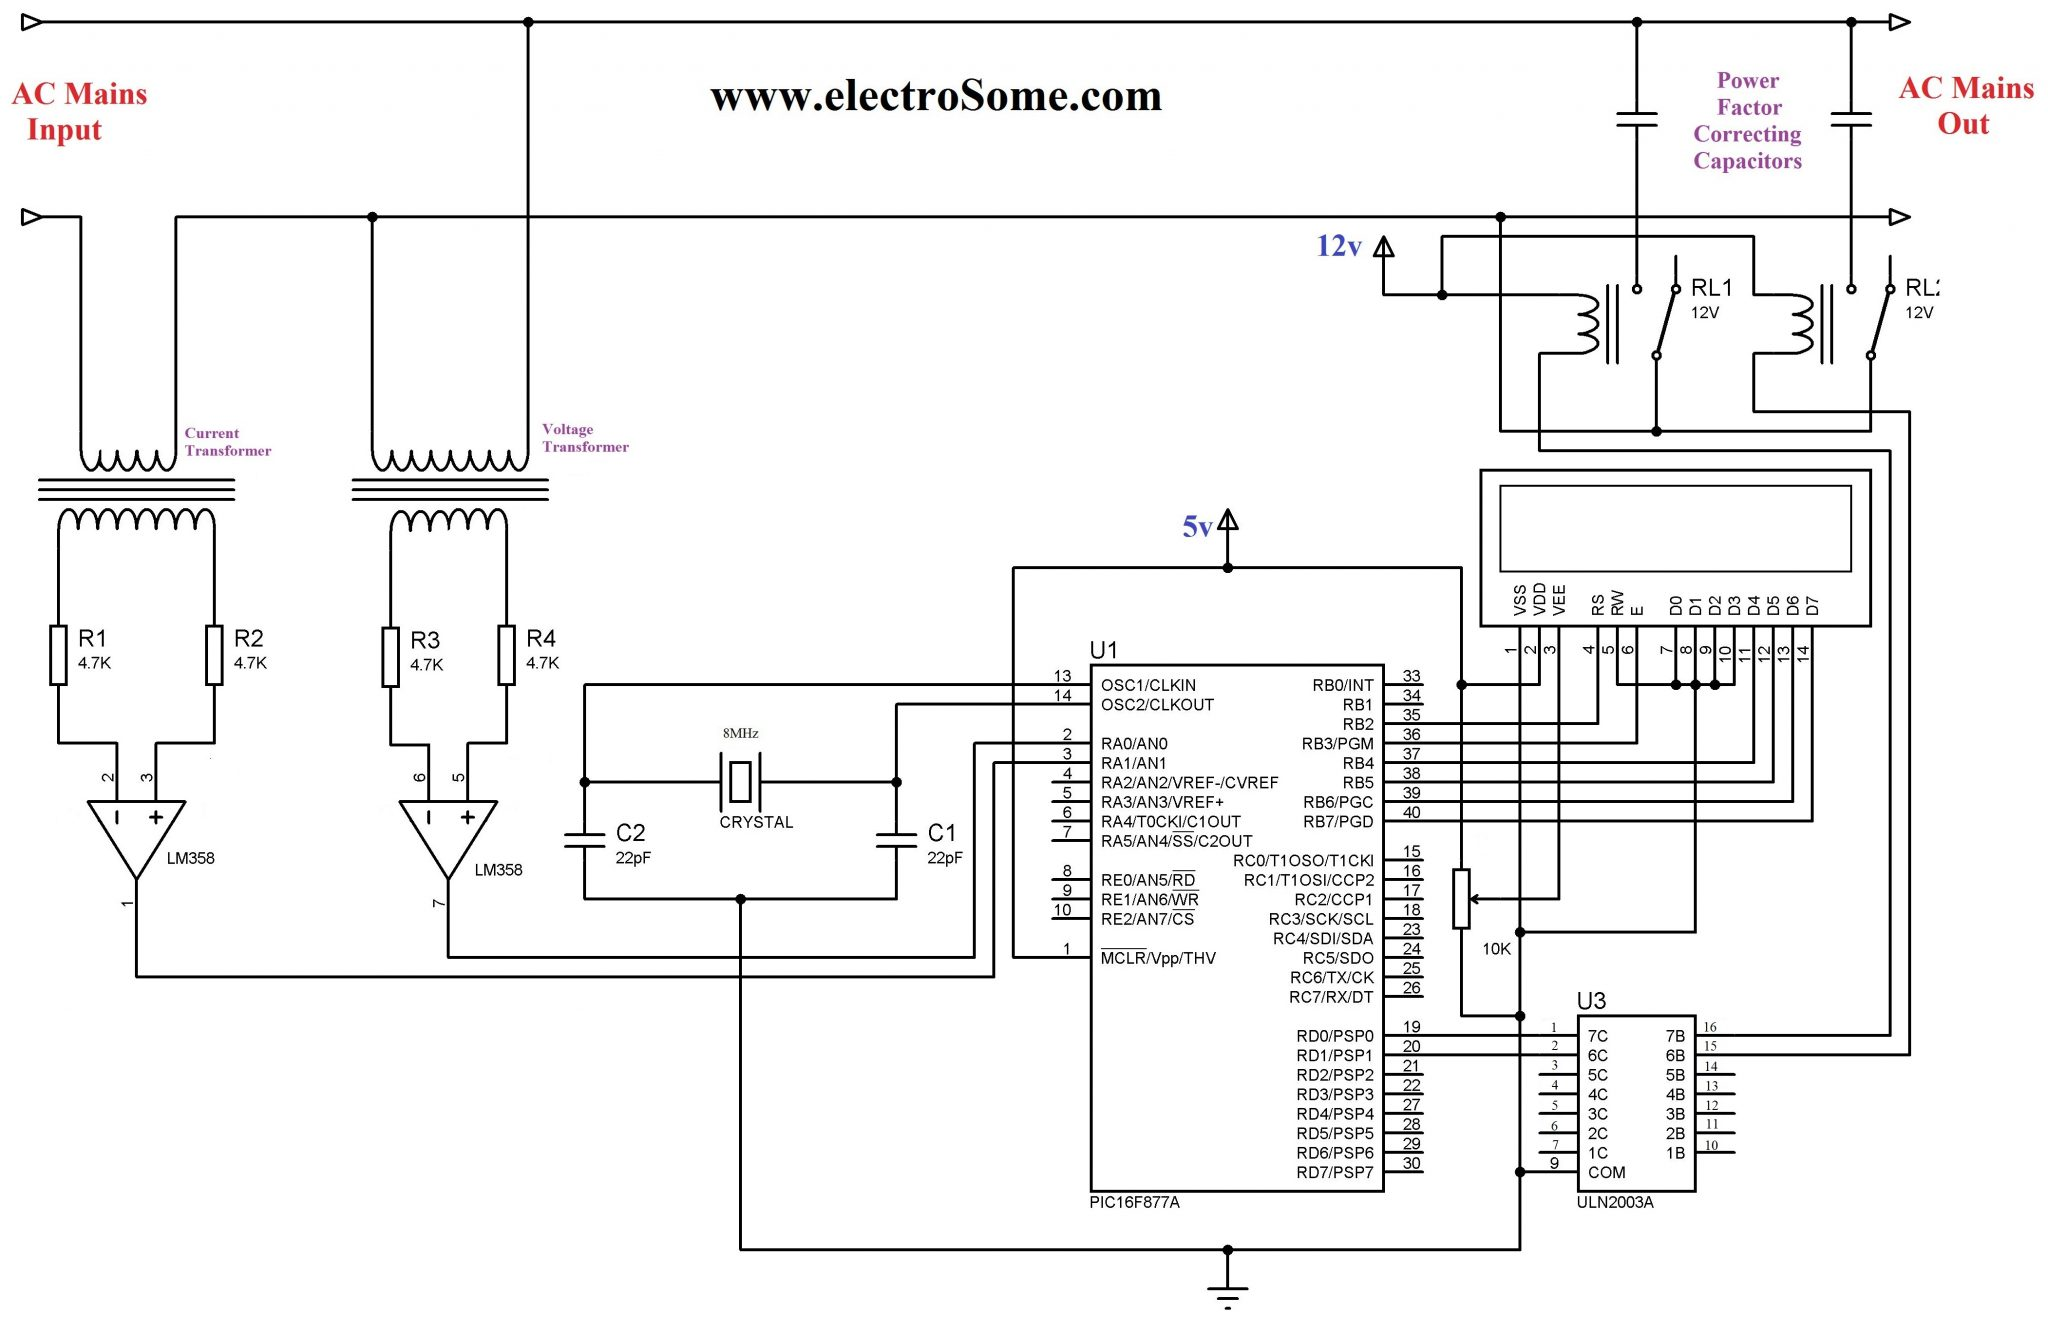 Automatic Power Factor Controller using PIC Microcontroller Circuit Diagram automatic power factor controller using pic microcontroller apfc panel wiring diagram pdf at bakdesigns.co